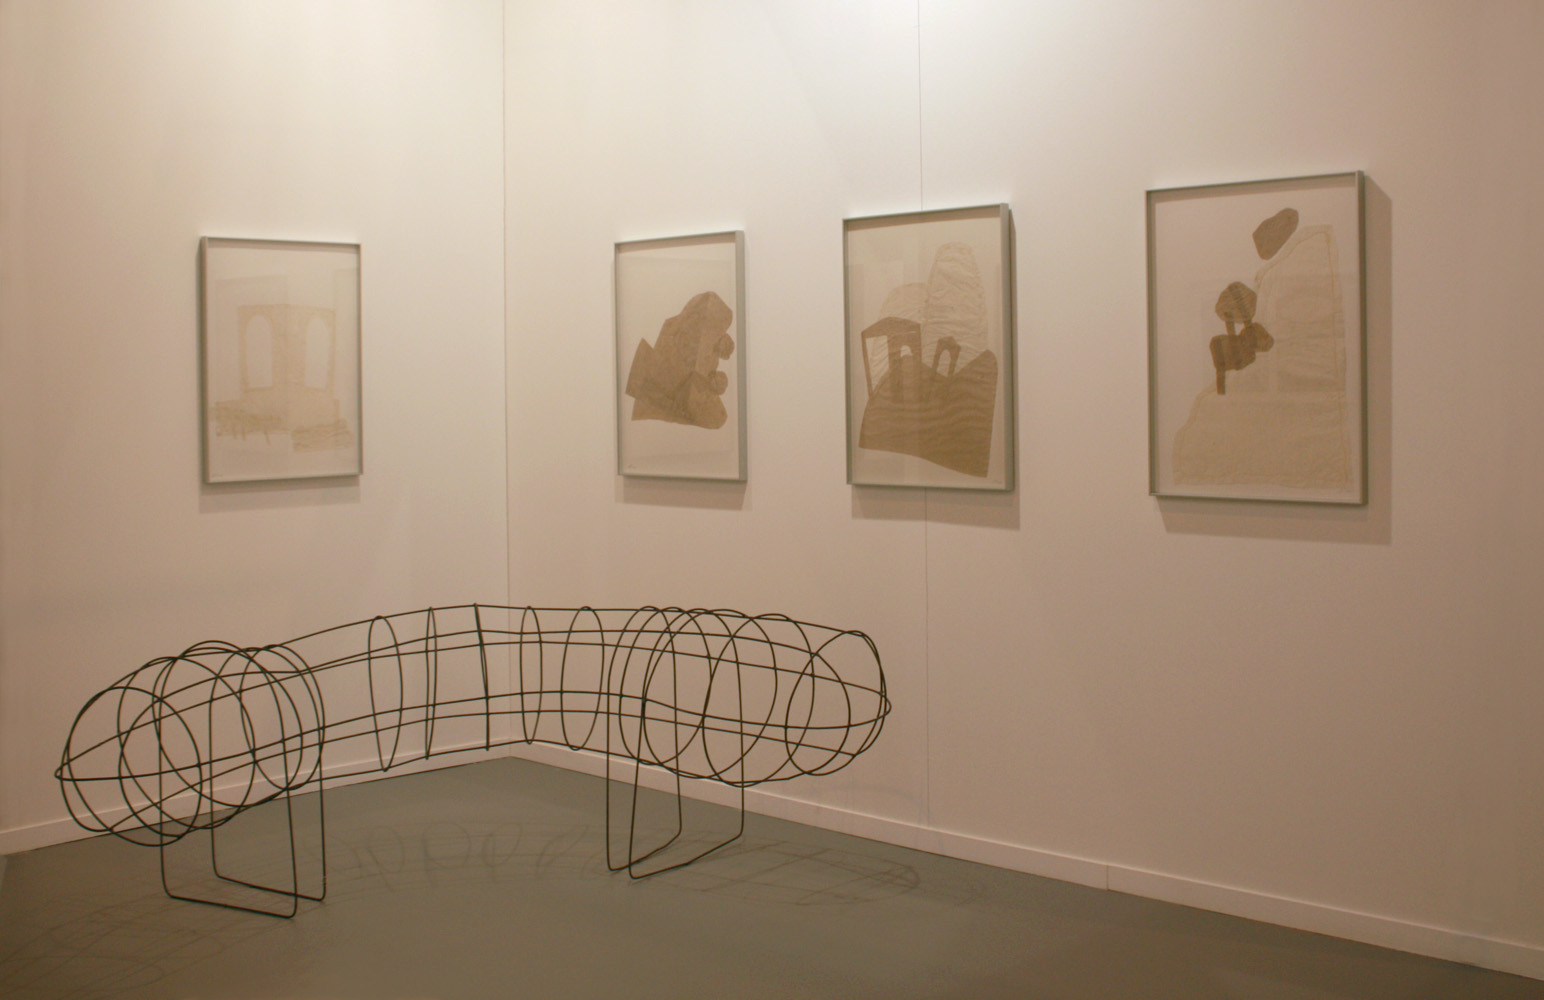 Installation view of the Galeria Maior stand in ARCOmadrid, 2014